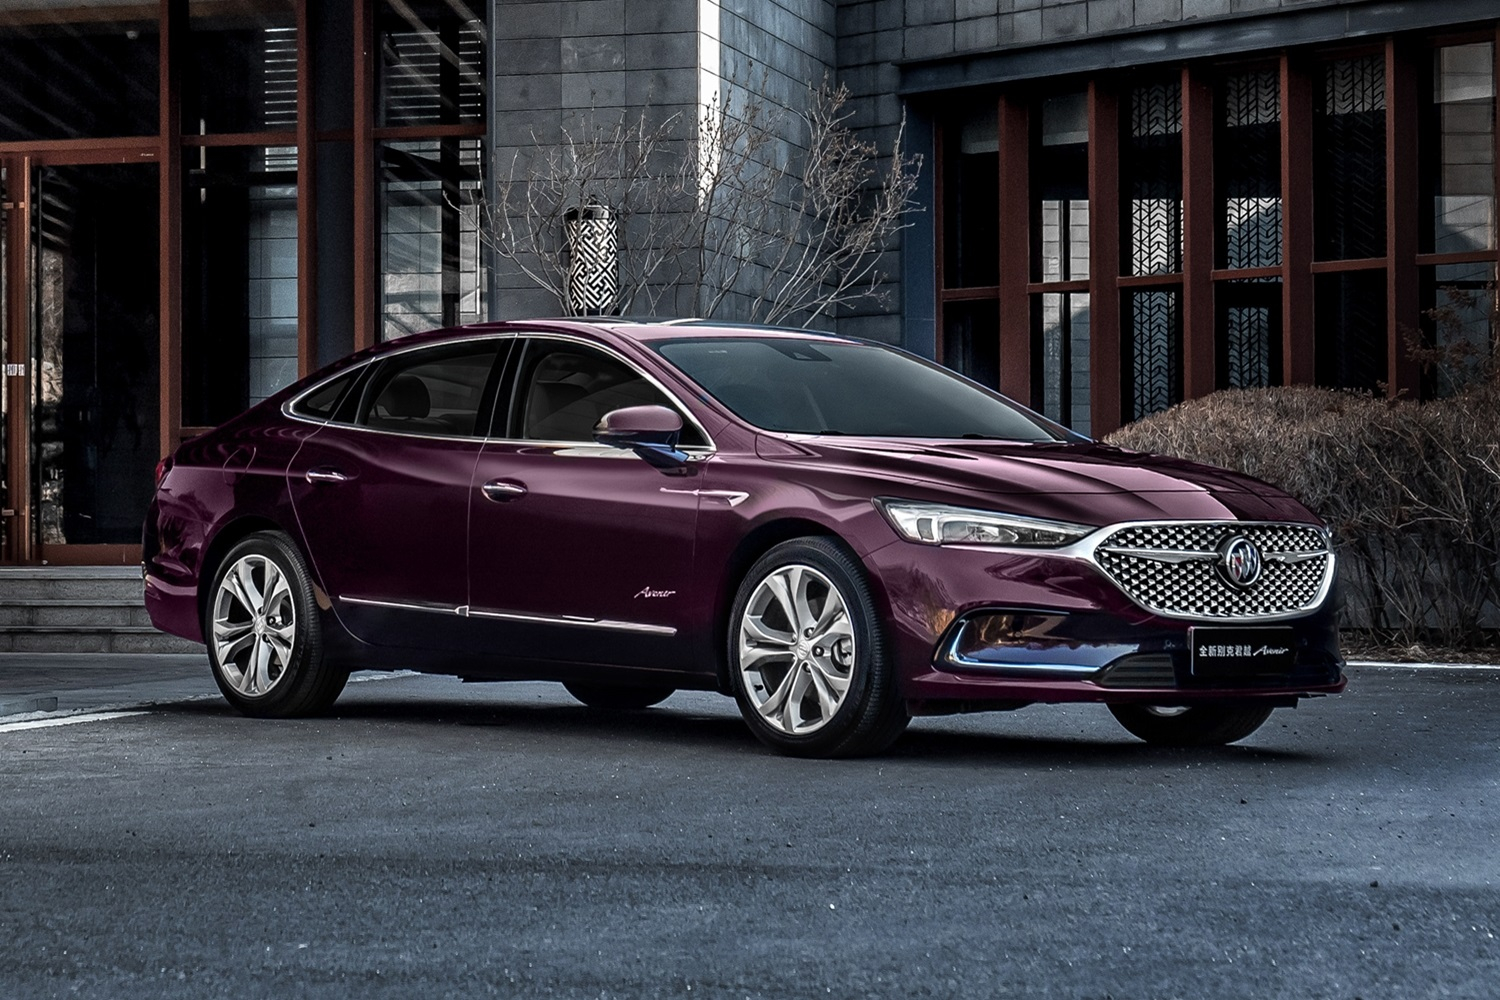 2021 Buick Lacrosse Gets More Refined Than Ever | Gm Authority Where Is The New 2021 Buick Lacrosse Made